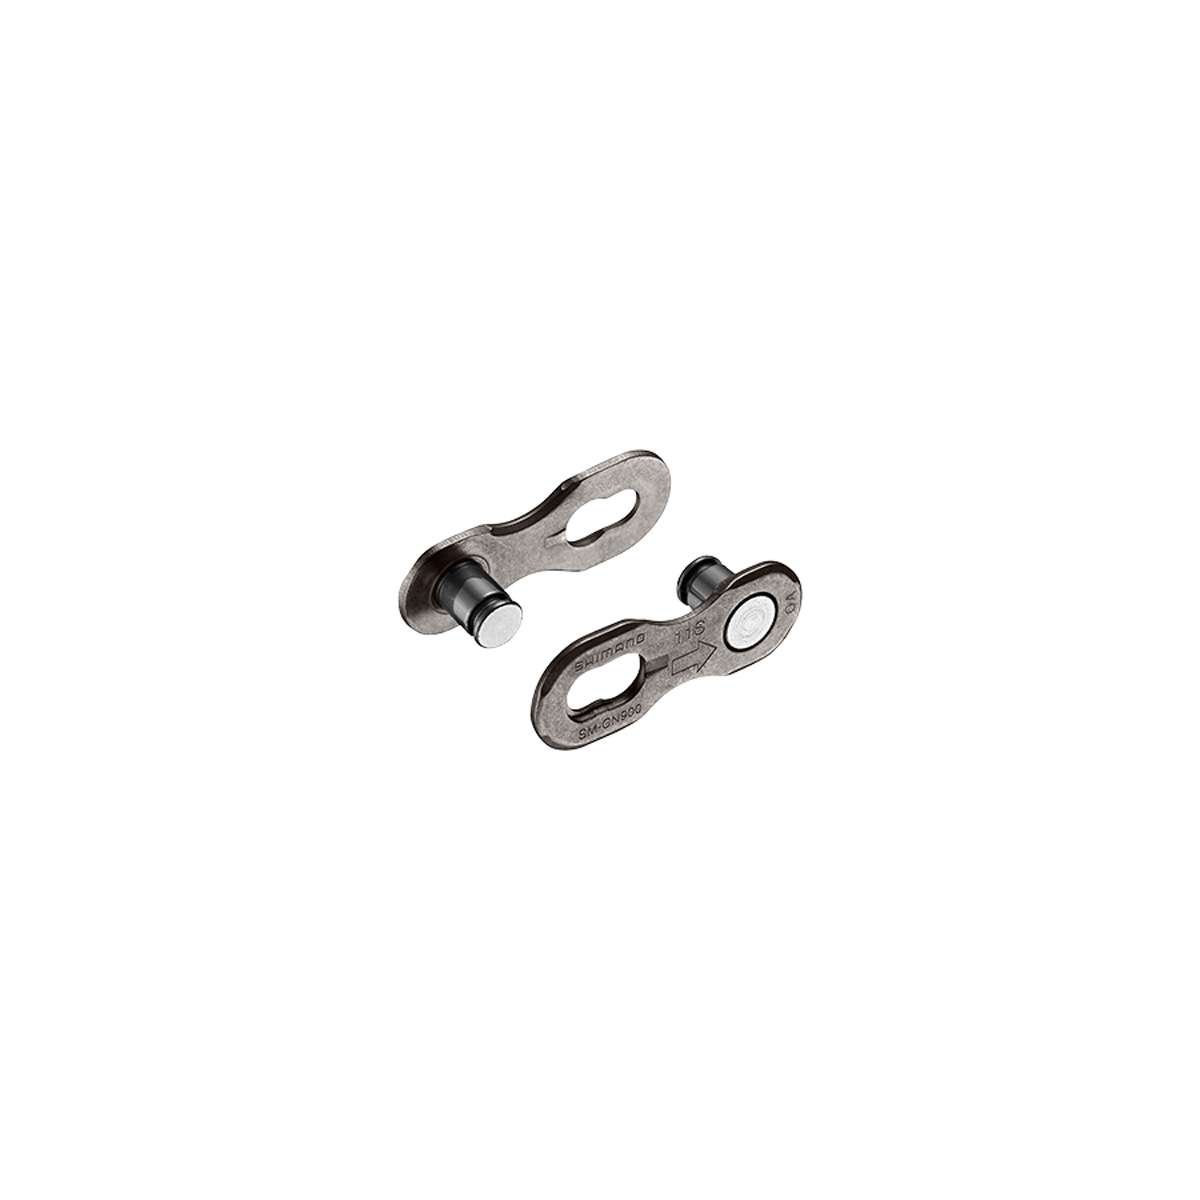 Shimano Quick Link For 11-Speed Chain